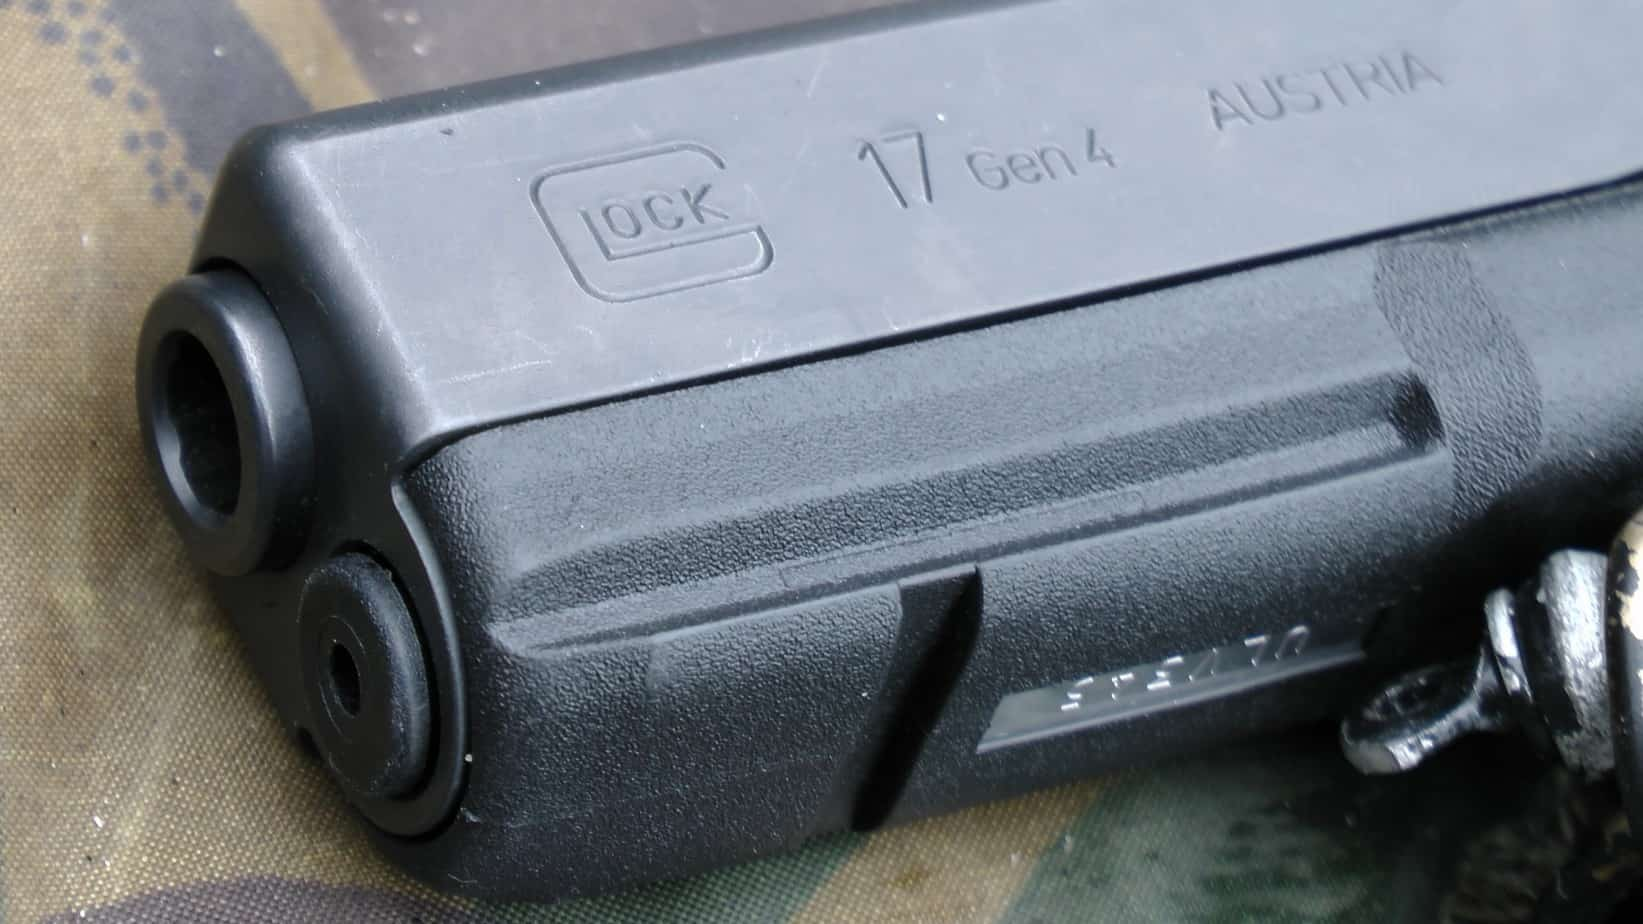 Minuteman Review Guide to Glocks What Do All Those Numbers Mean